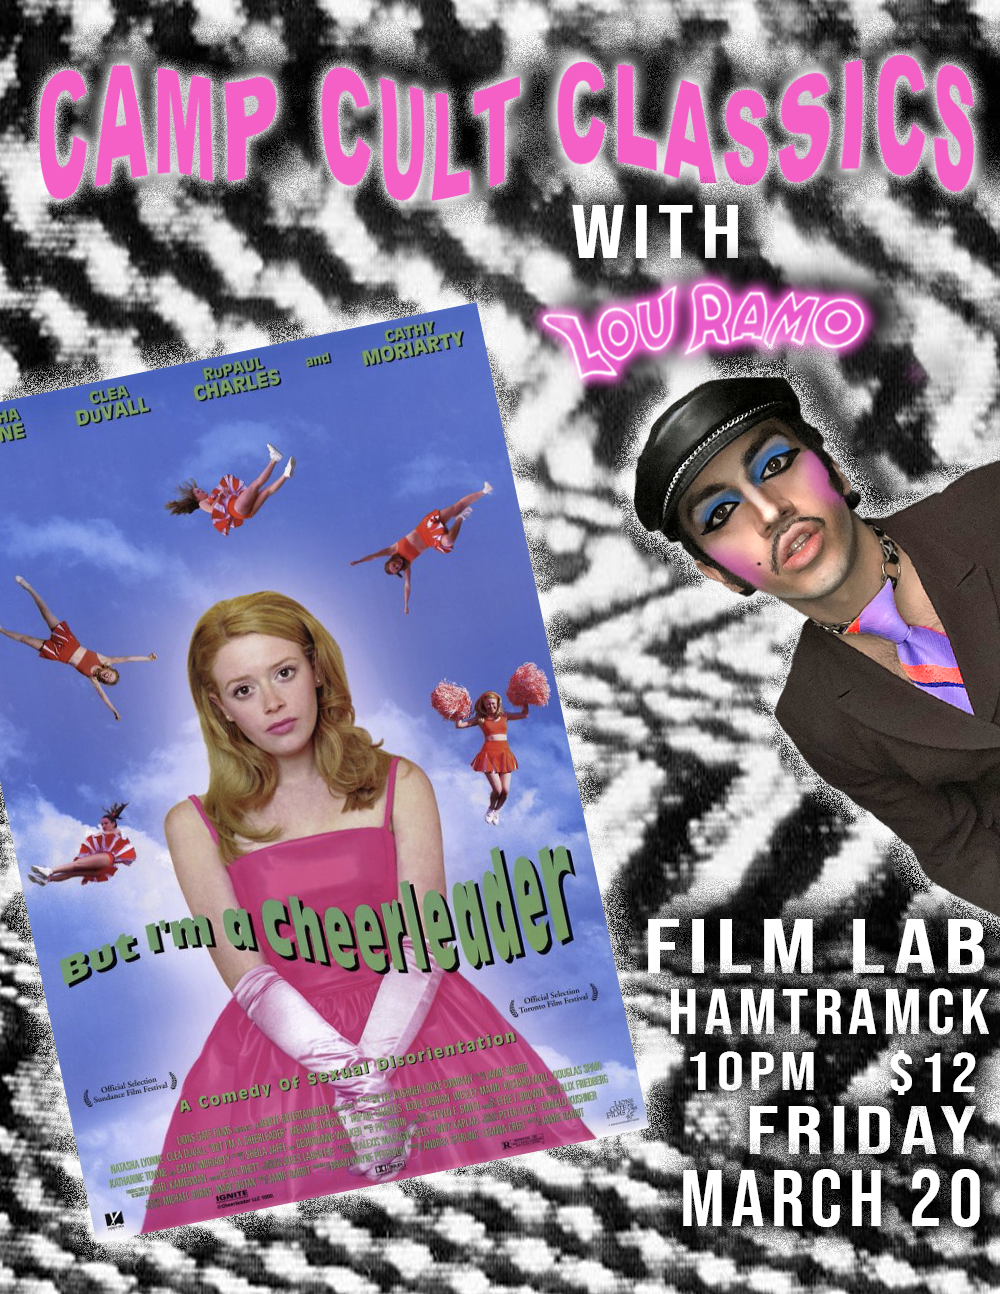 Poster for Camp Cult Classics with Lou Ramo: BUT I'M A CHEERLEADER